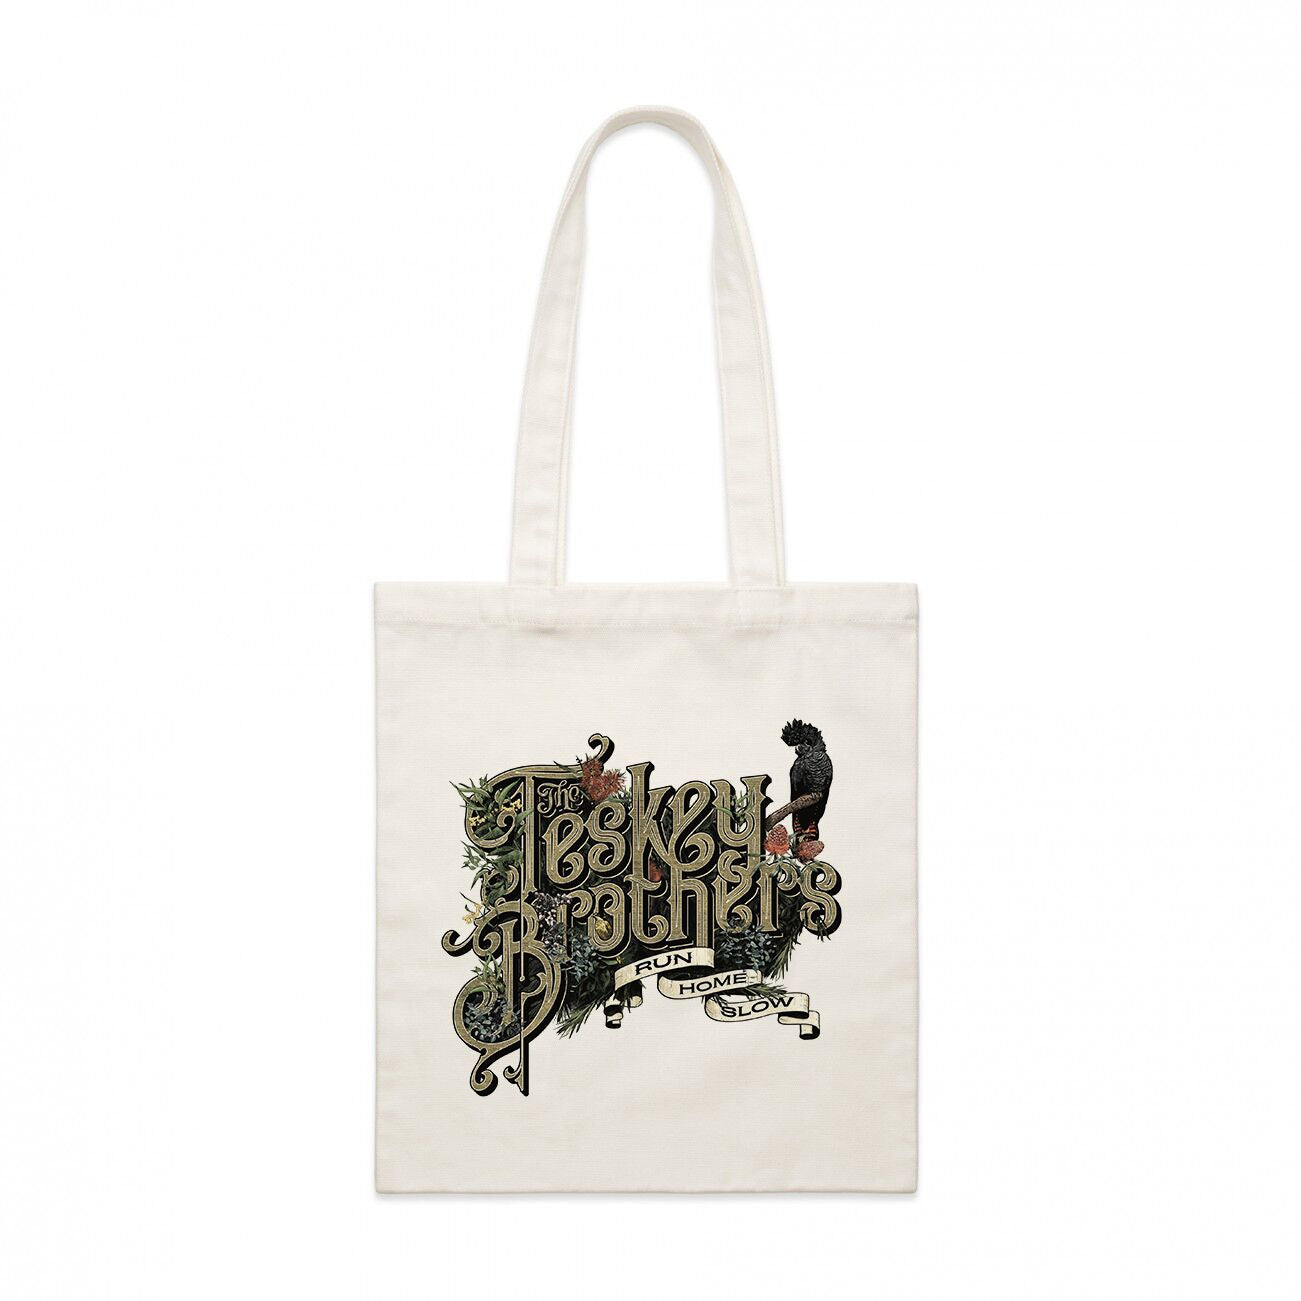 Run Home Slow Tote (Natural)